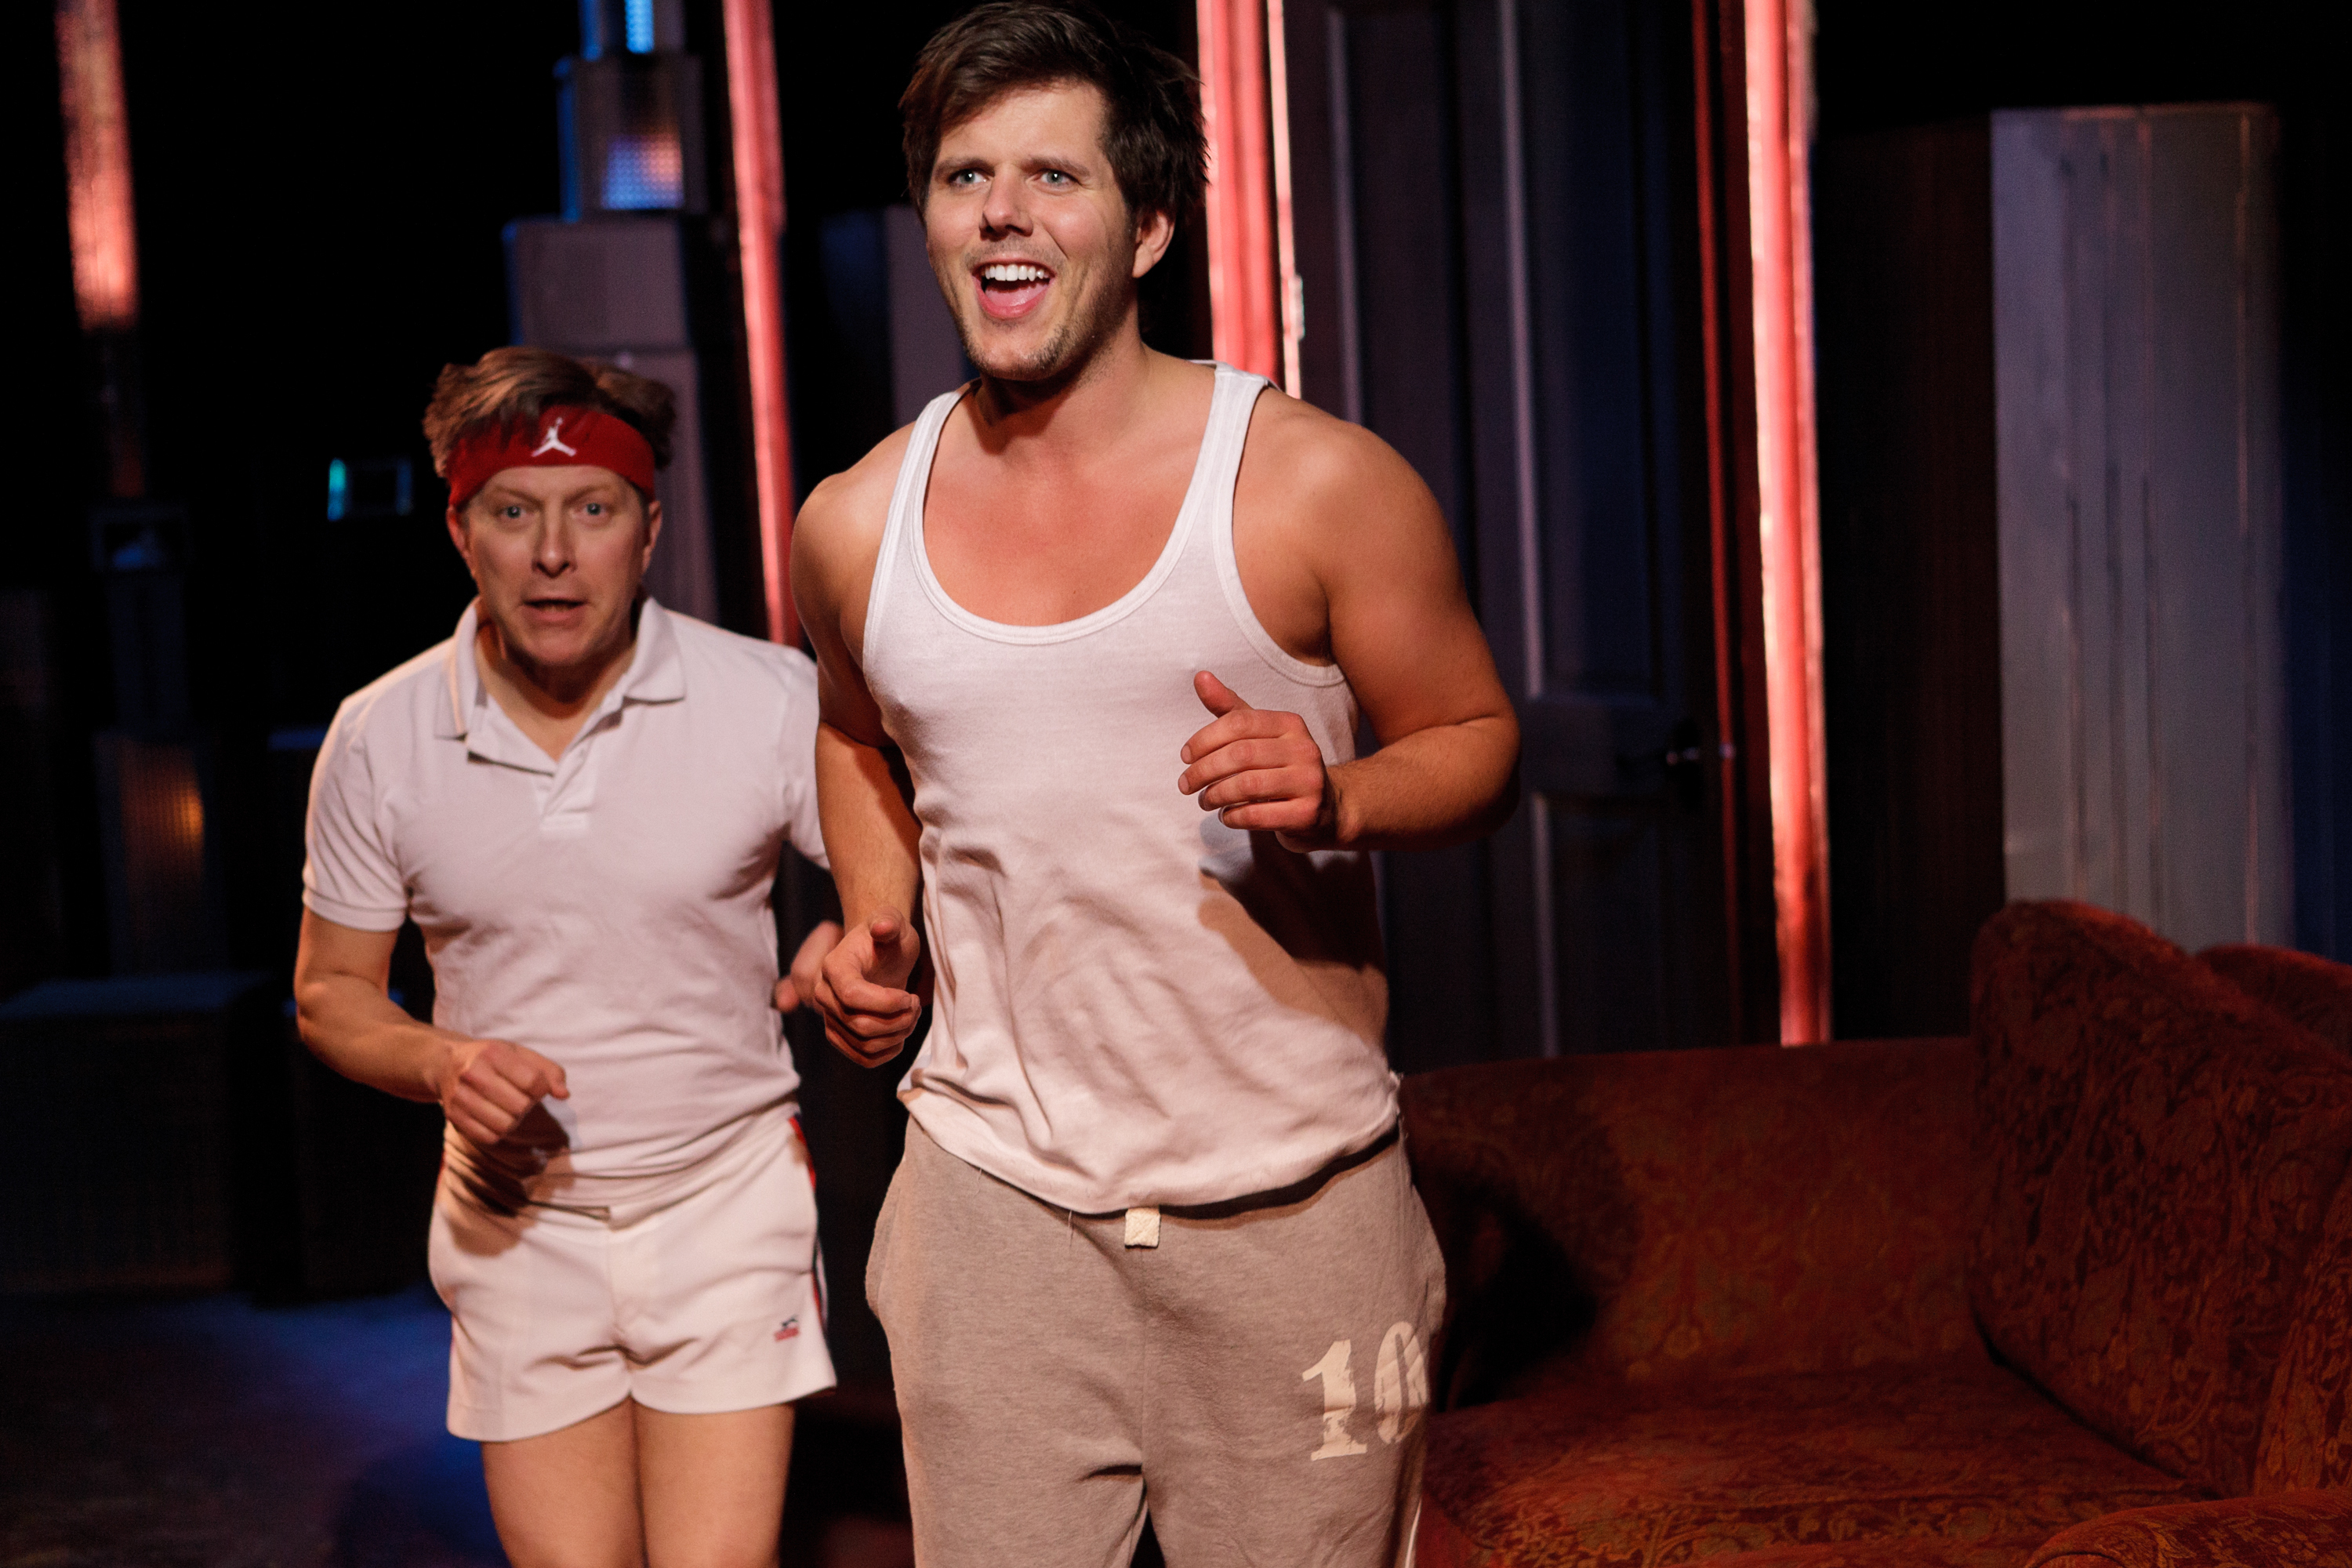 'The Thing About Men' Landor Theatre